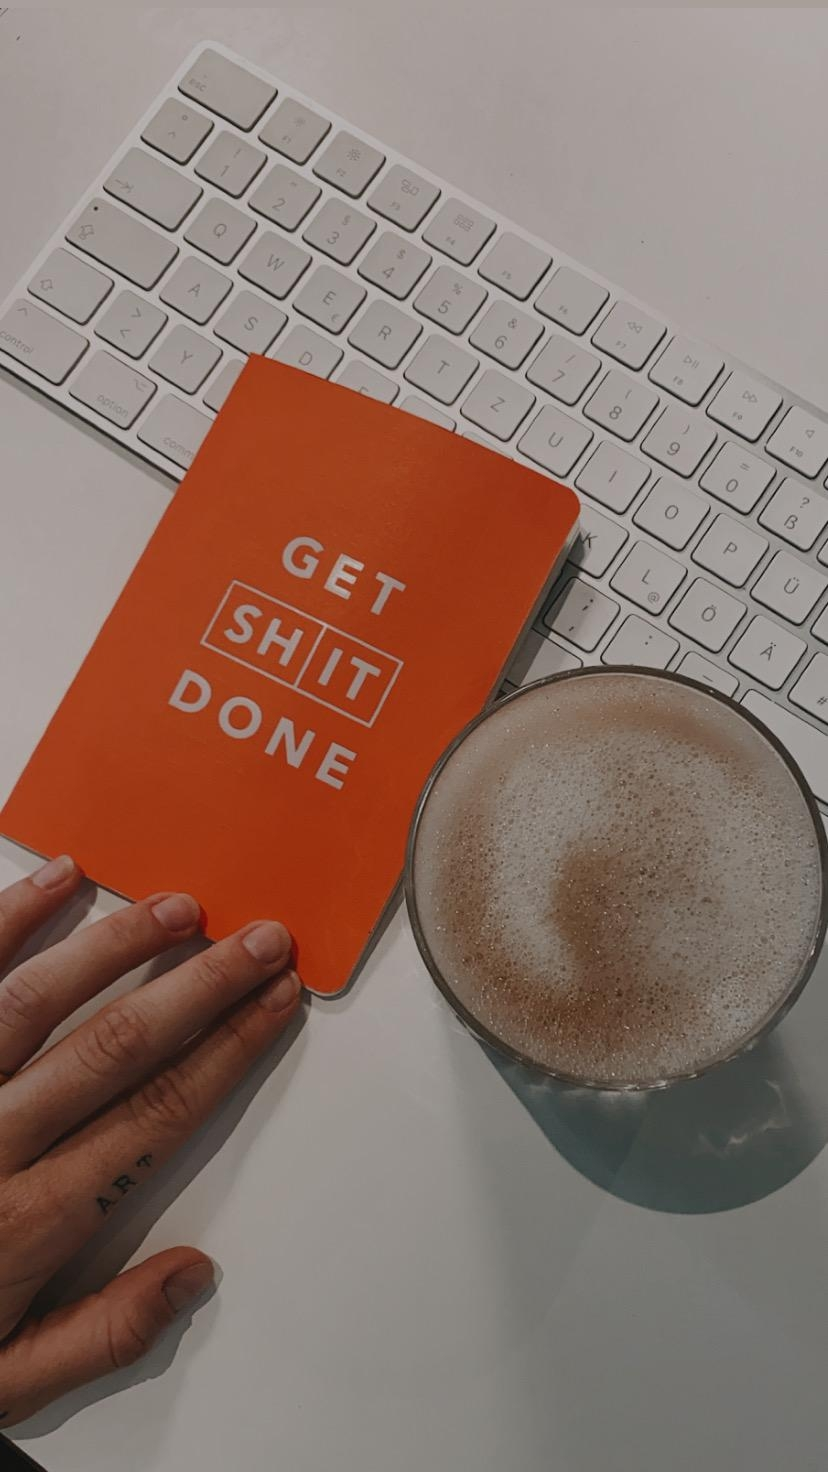 get shit done. #notizbuch #todos #office